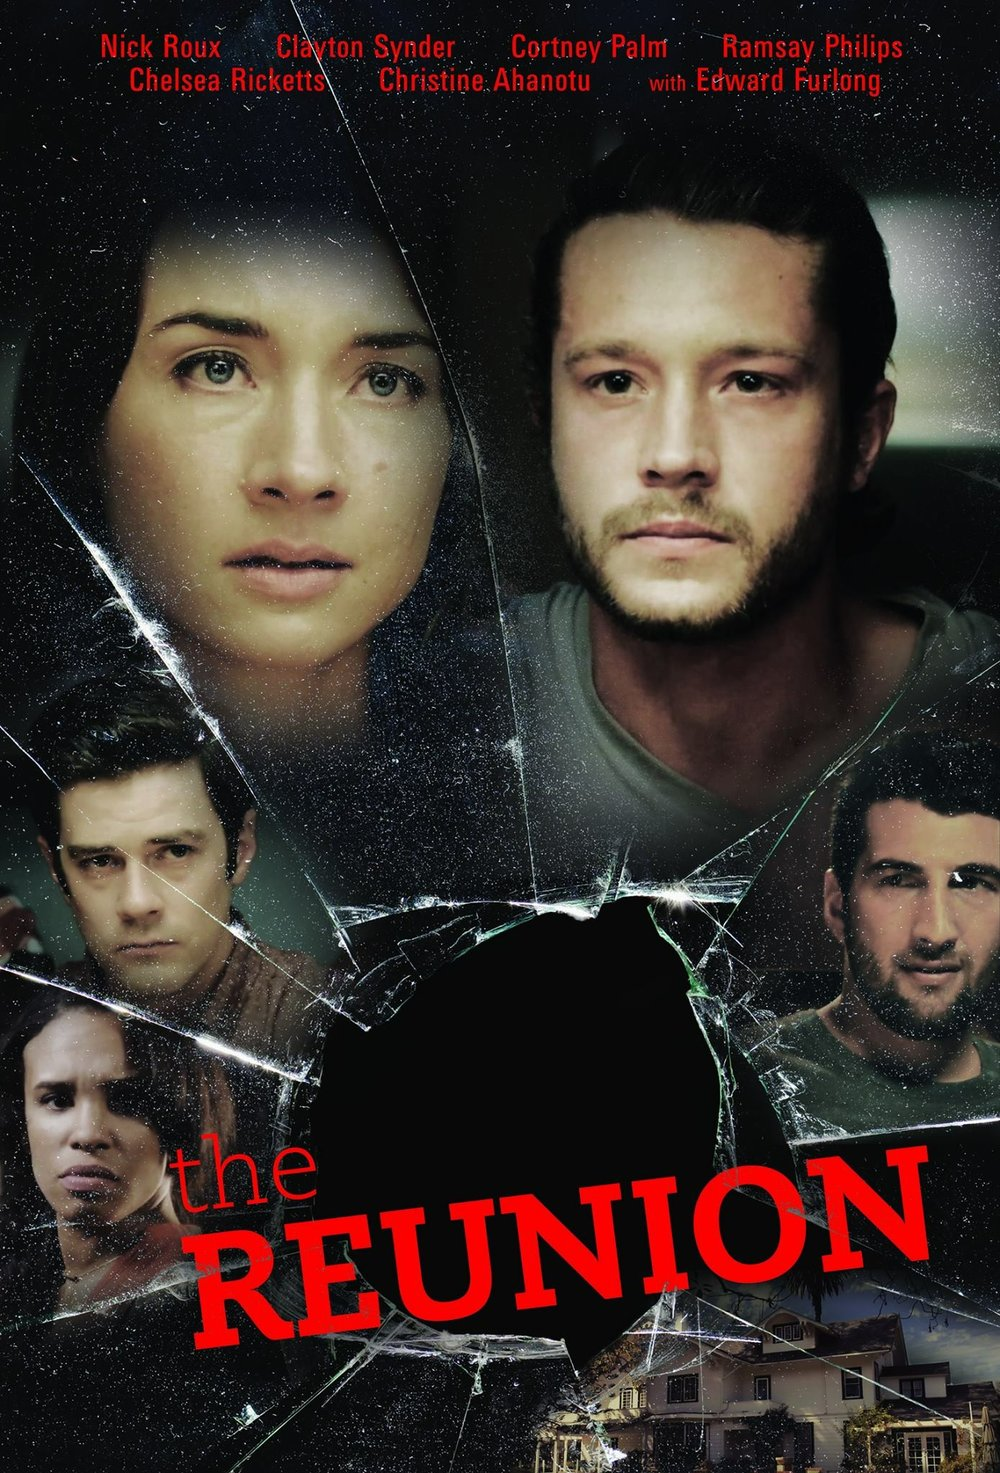 """The Reunion"" available on Dish, Vubiquity, Amazon, FandangoNOW, iTunes, Playstation, Vudu, Xbox, and YouTube starting 9/22/17"